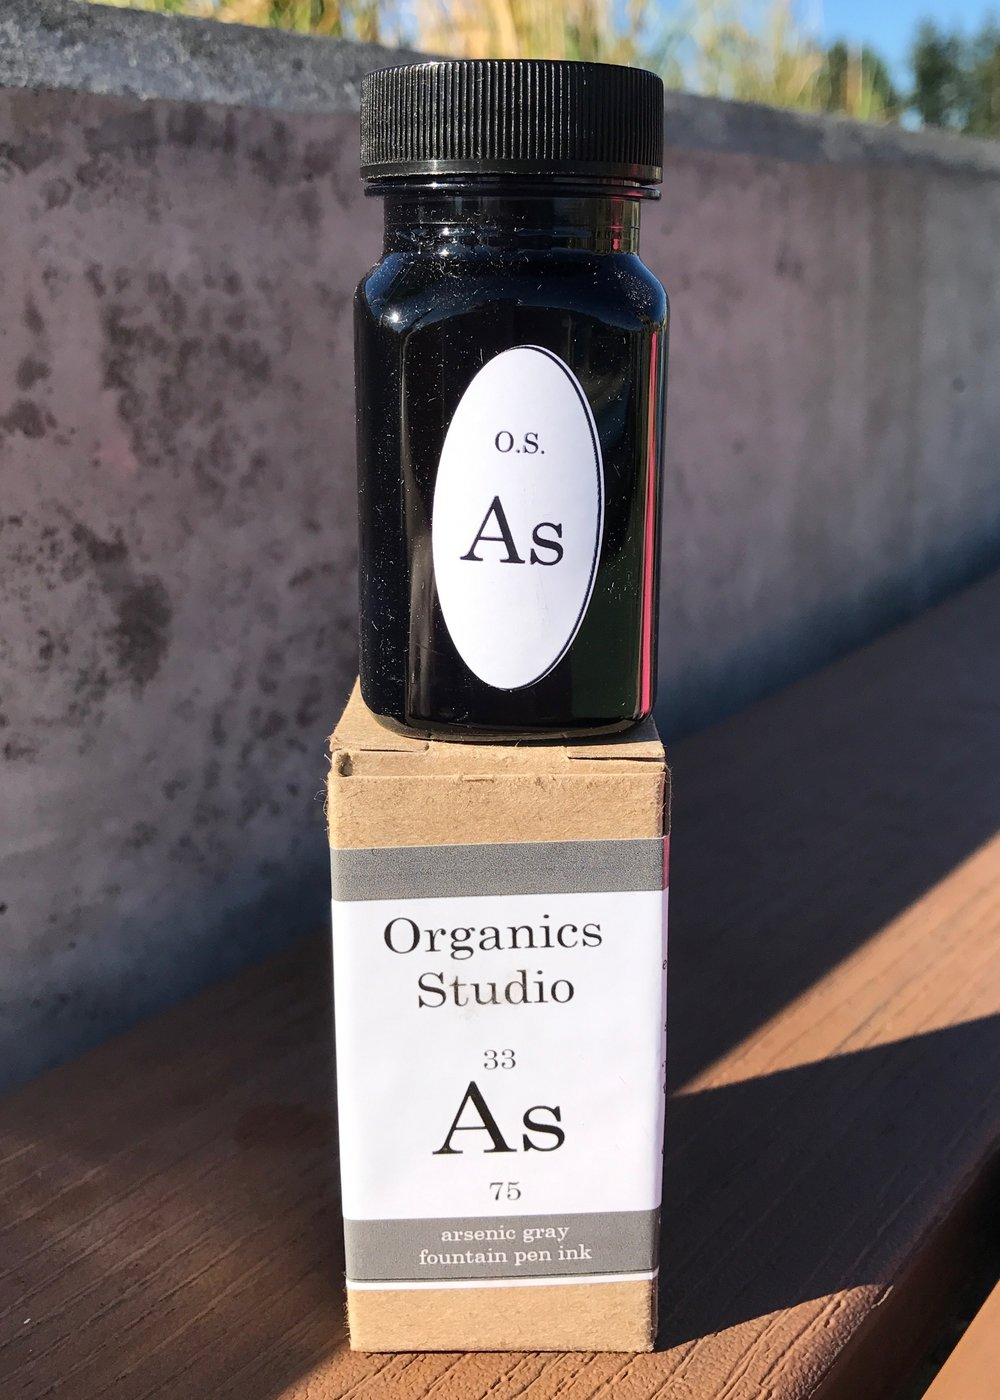 The bottle:  - Arsenic Gray comes in 55 ml bottles, made in Maryland.